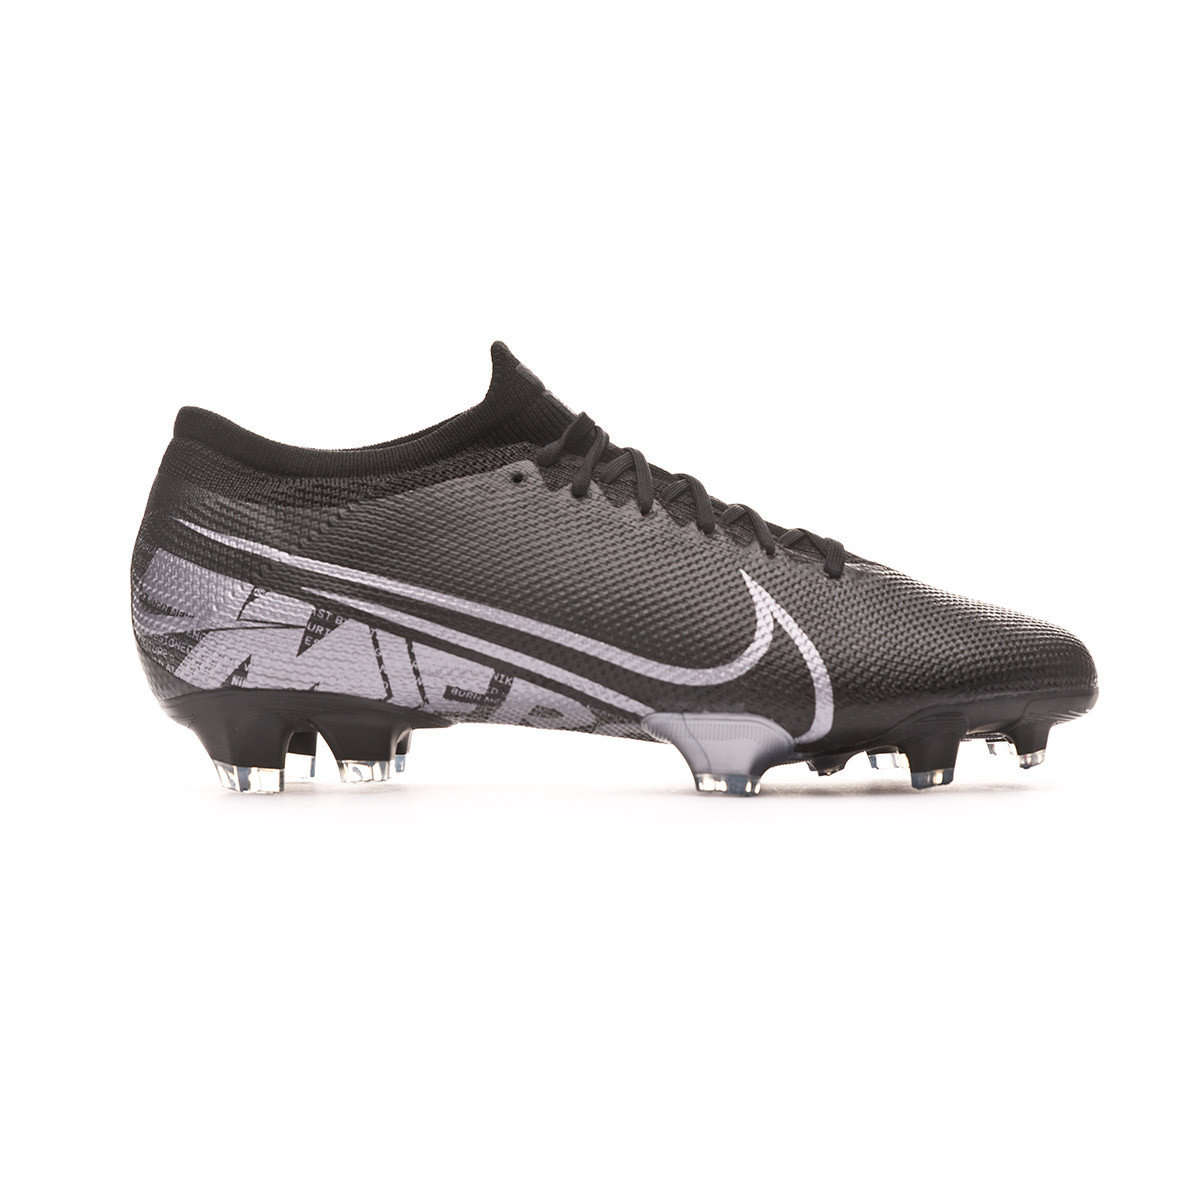 Buy Nike Mercurial Veloce FG Football Shoes Online India